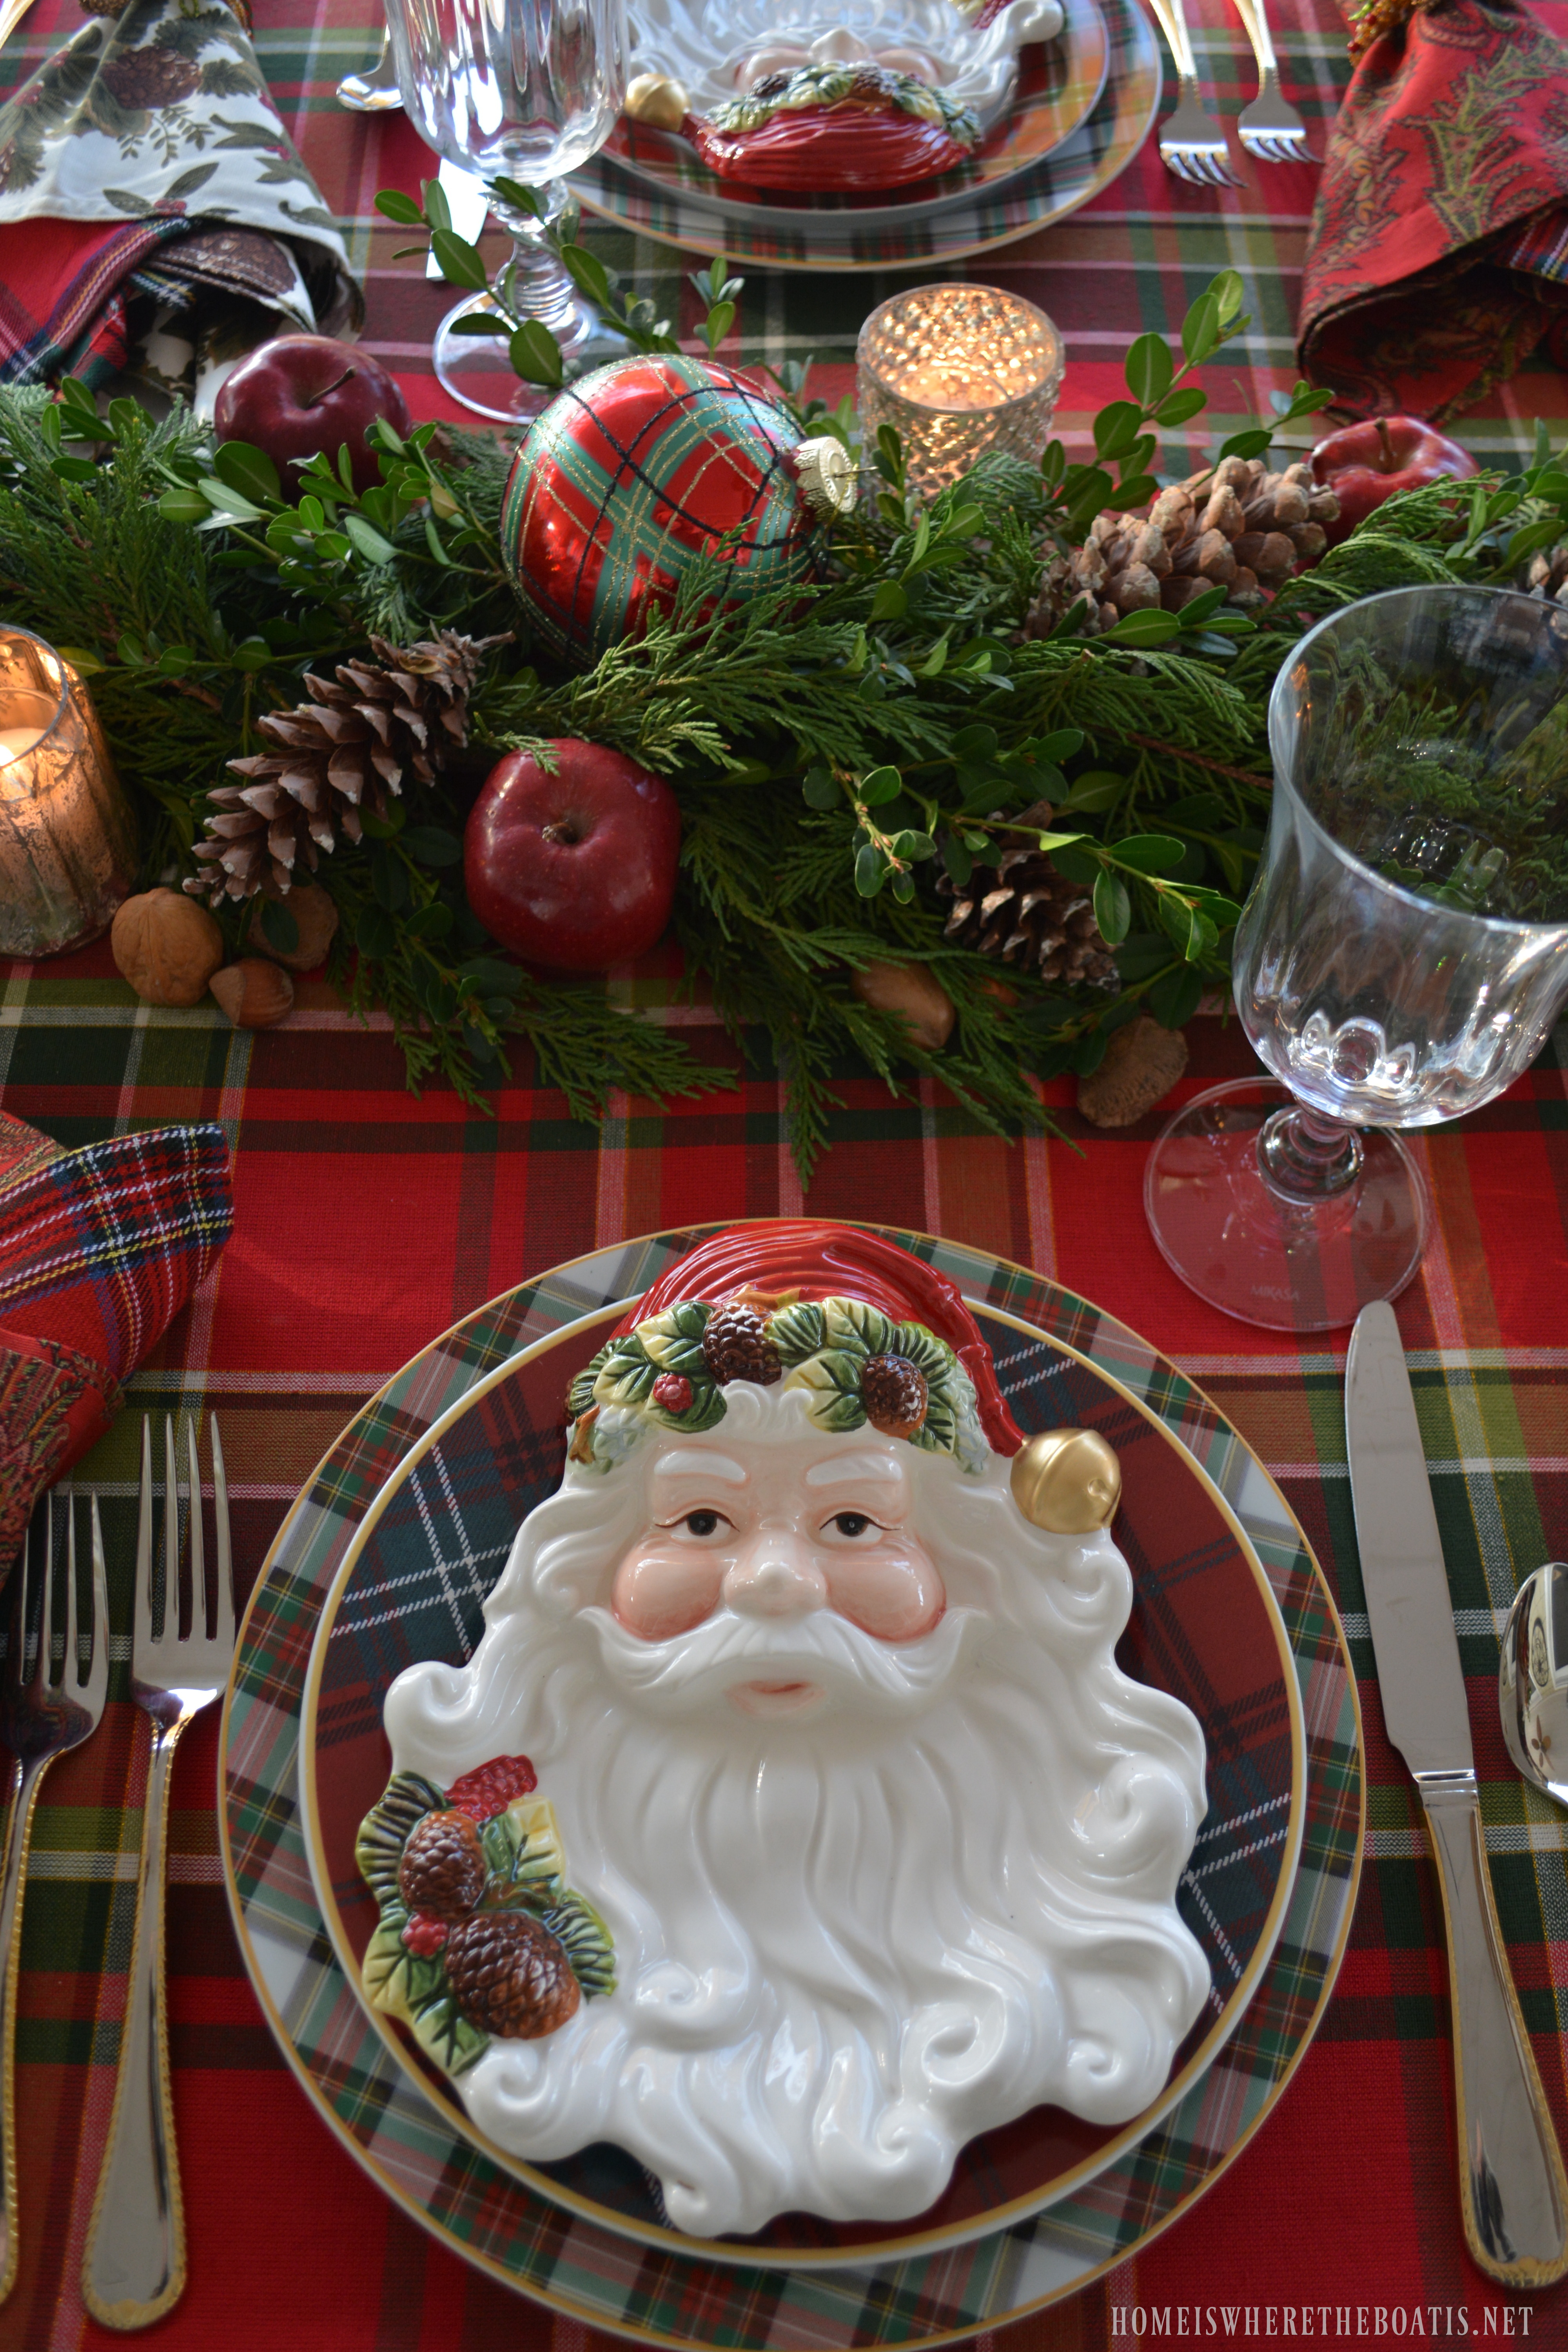 Plaid Tidings: A Christmas Table With St. Nick And A Natural Evergreen Table  Runner